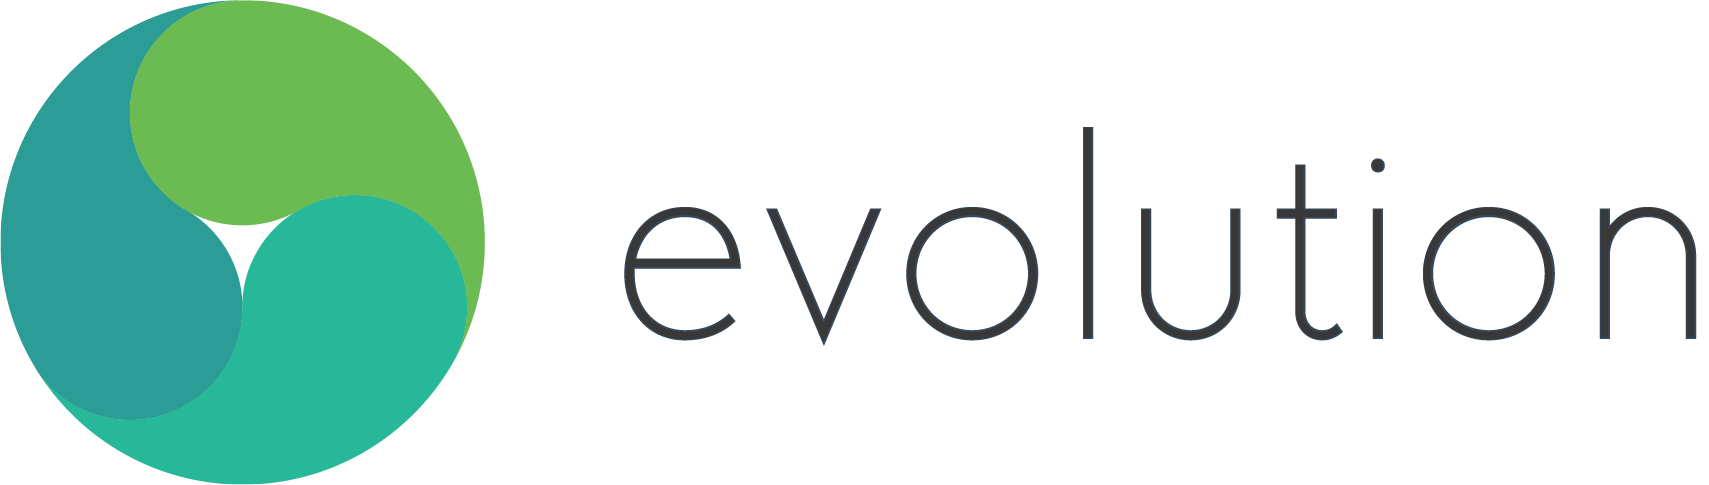 The logo for Evolution Coaching.